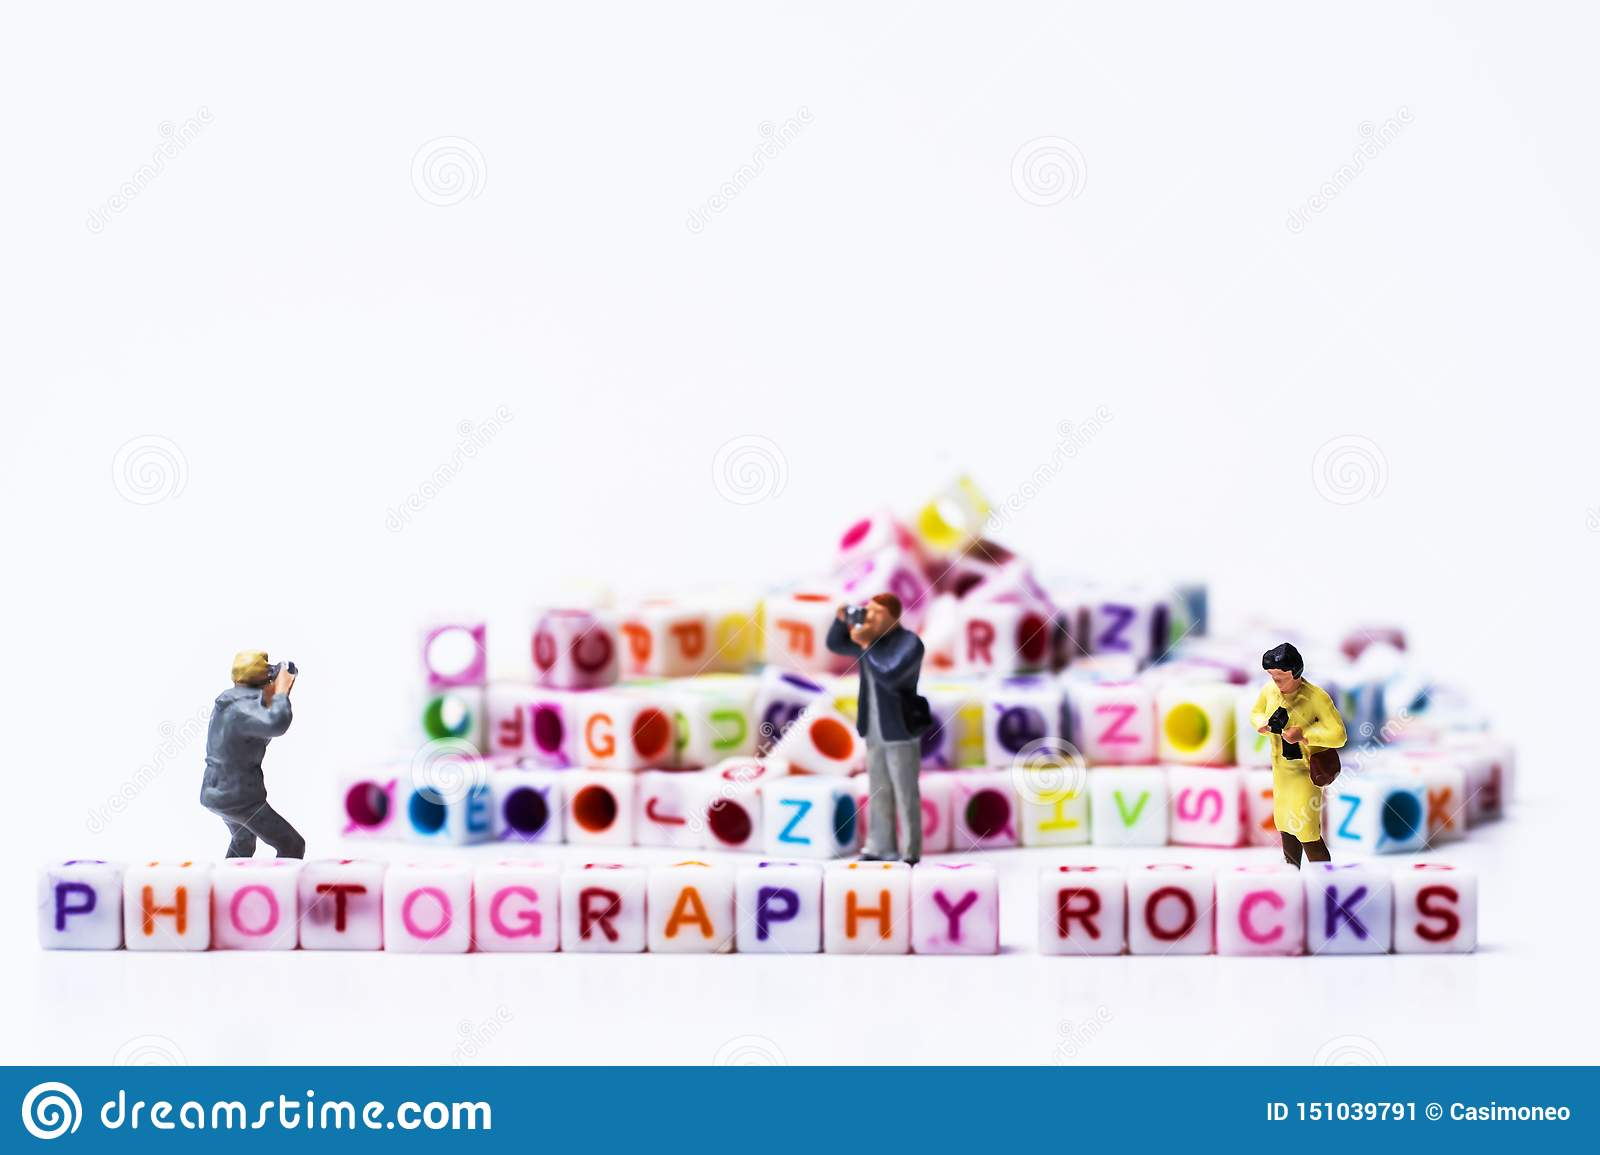 Miniature Photographers taking pictures before a Group Of Letters forming Words Spelling